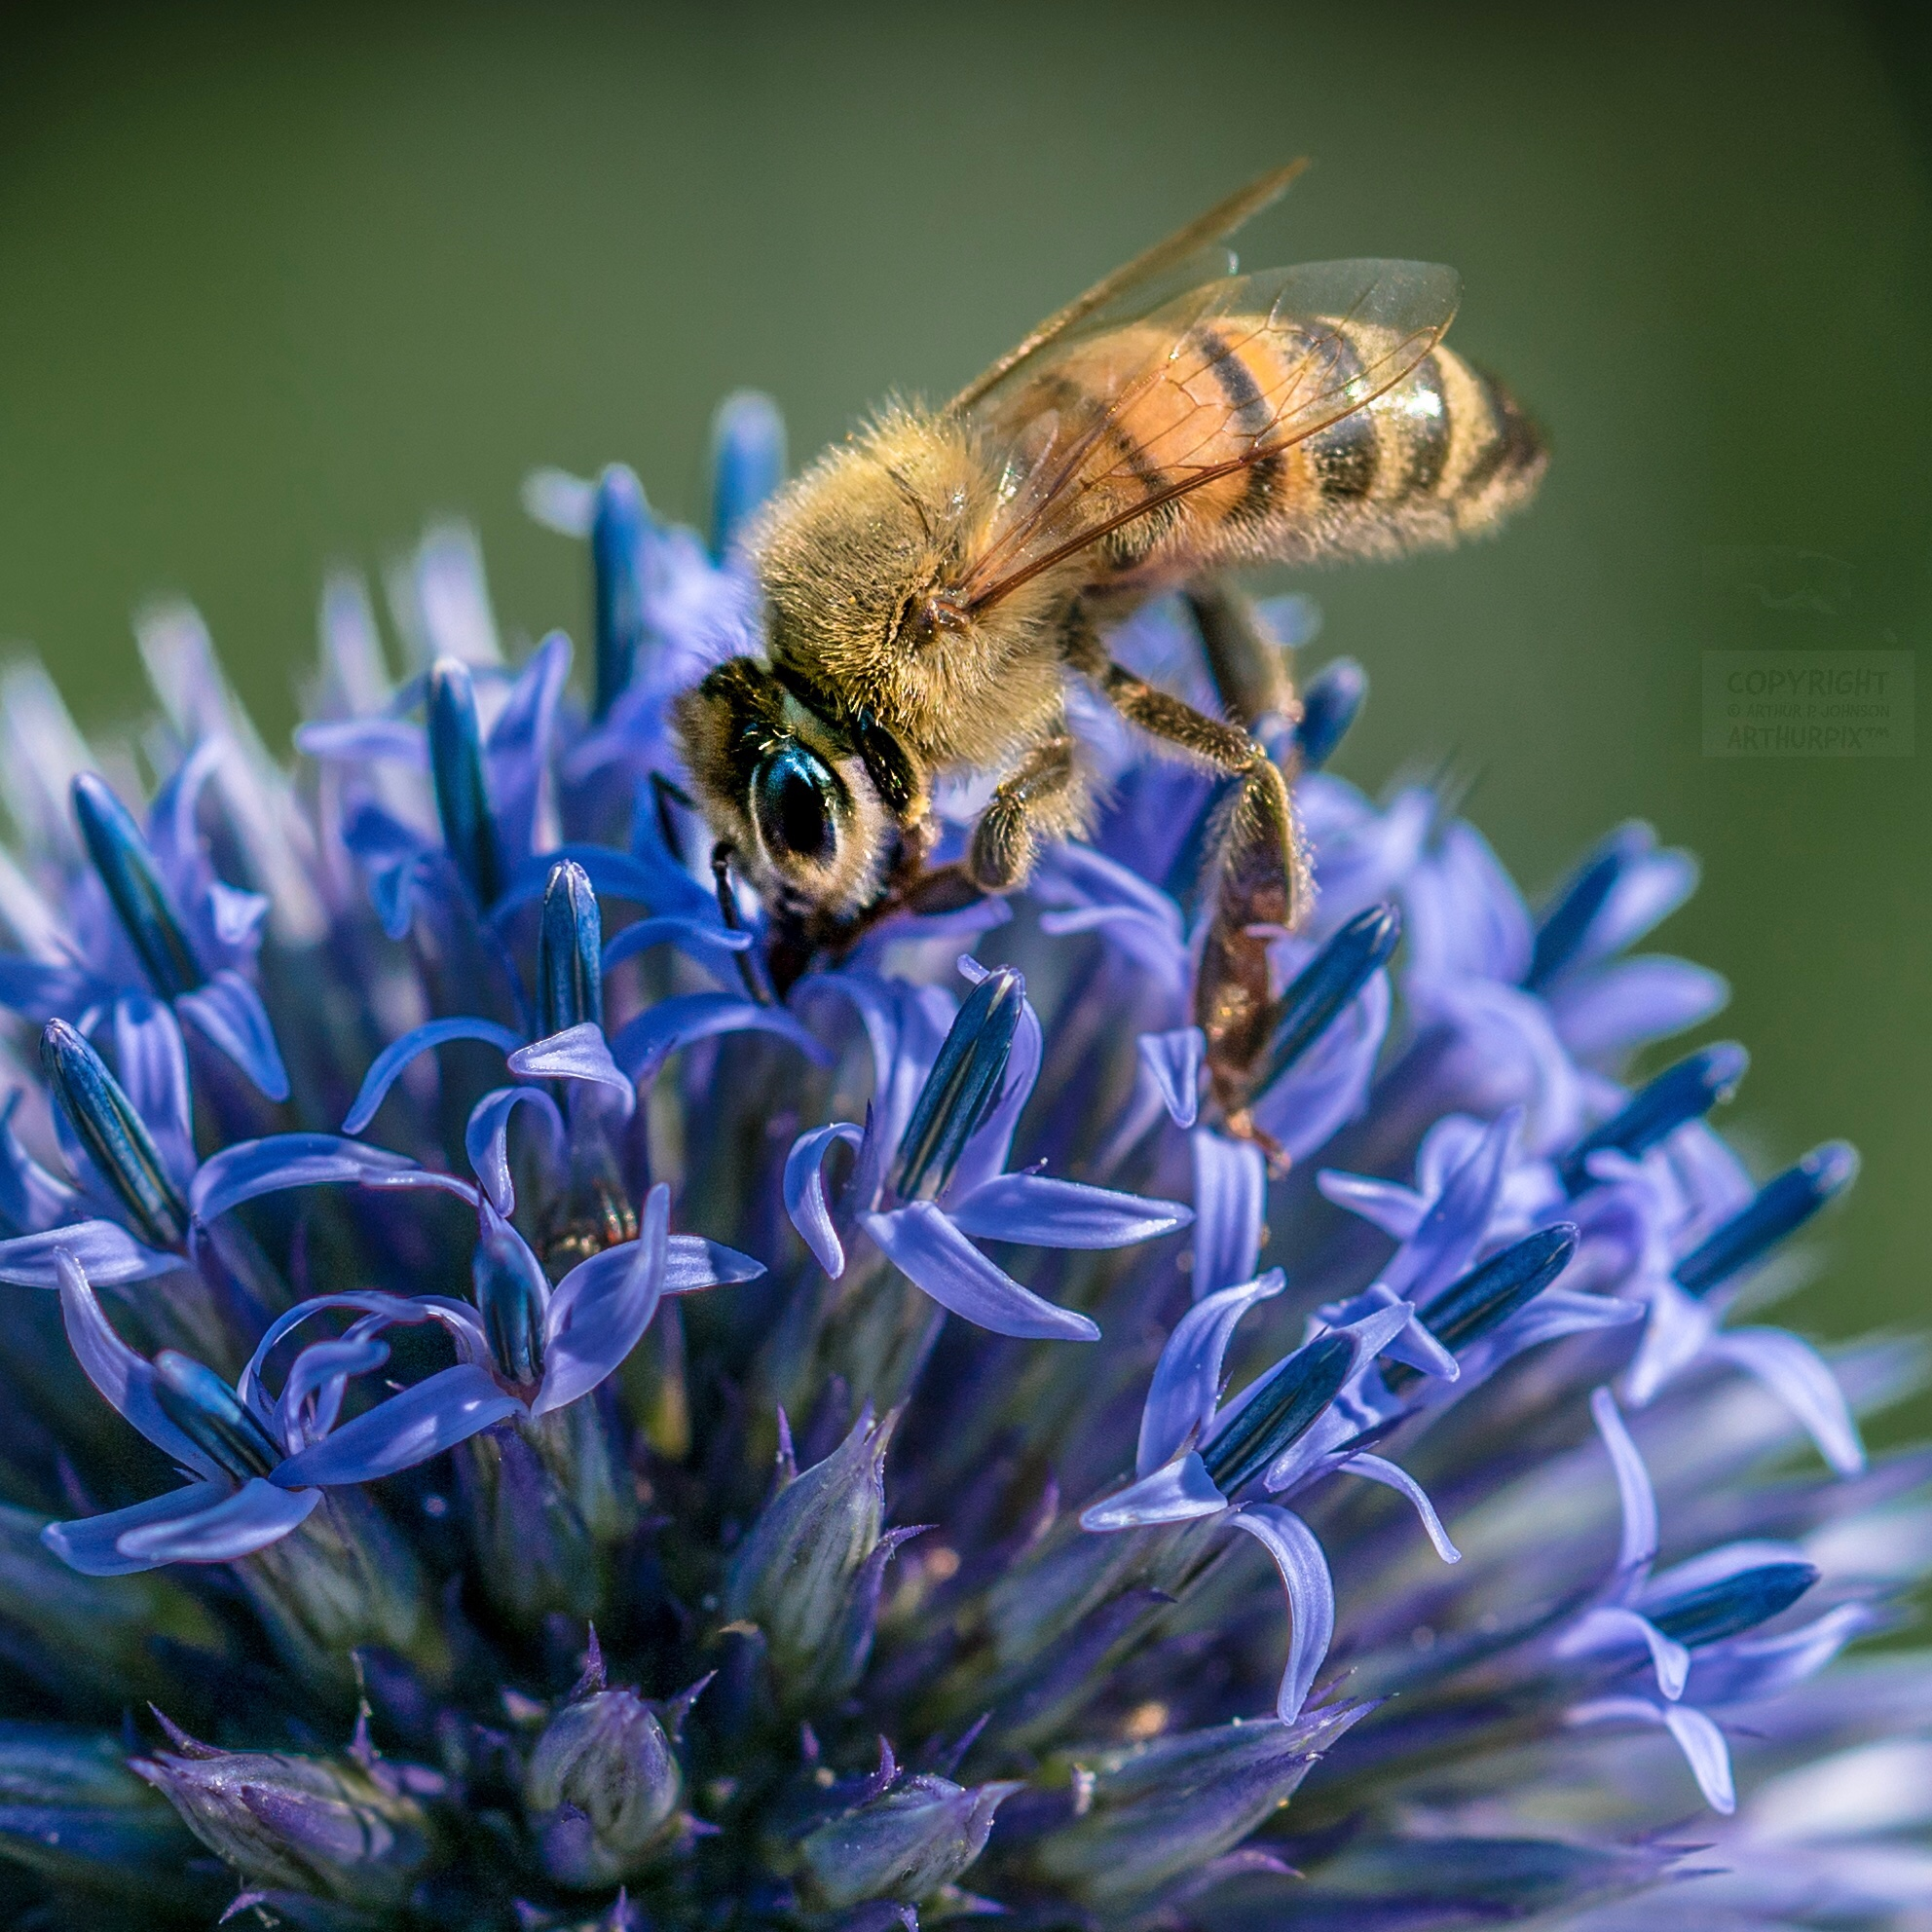 Honeybee on Globe Amaranth